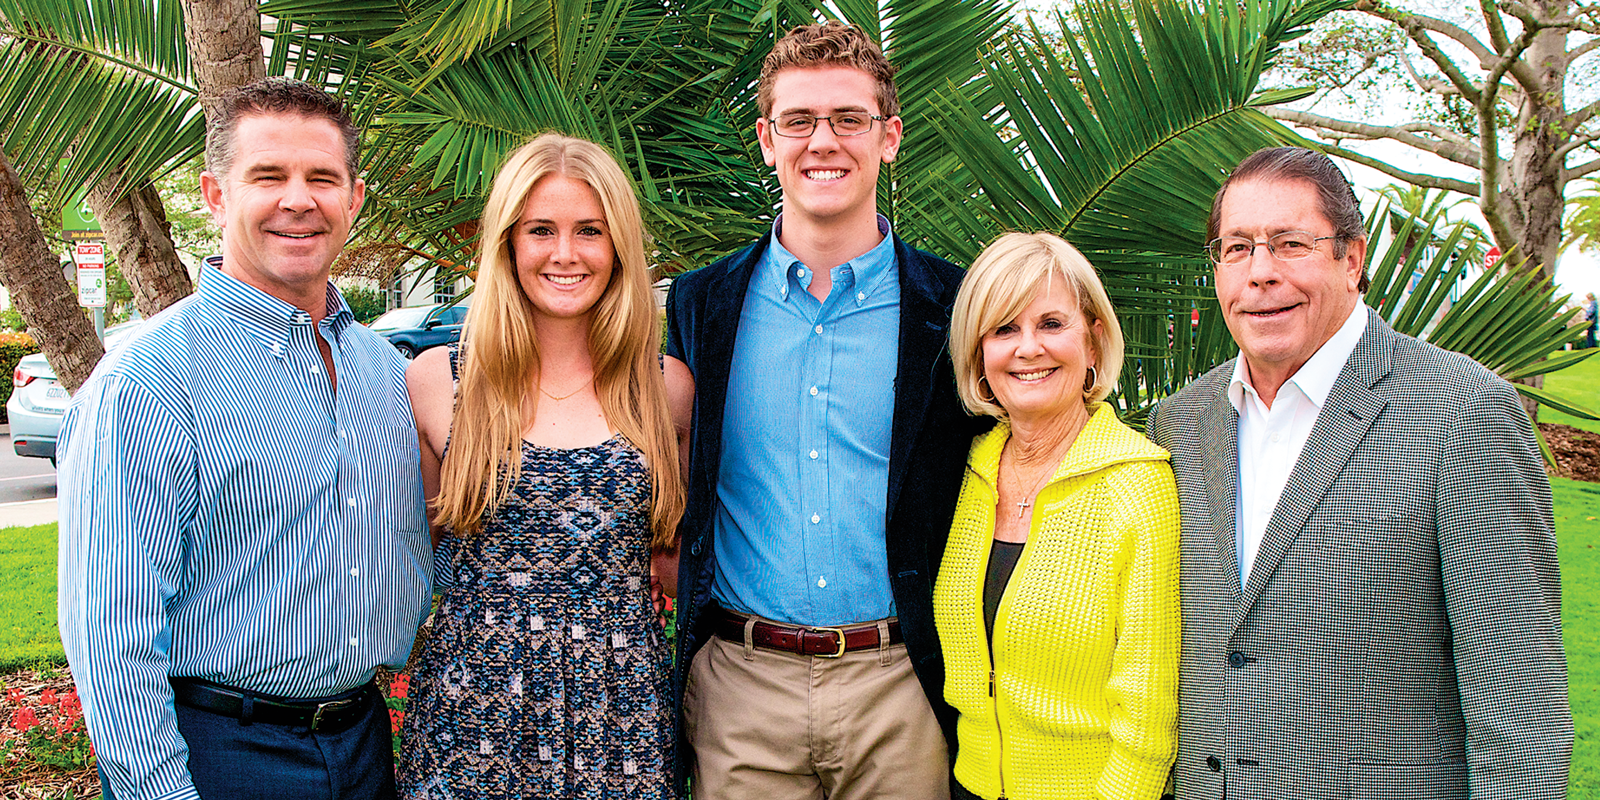 Generations of the McDonnell family